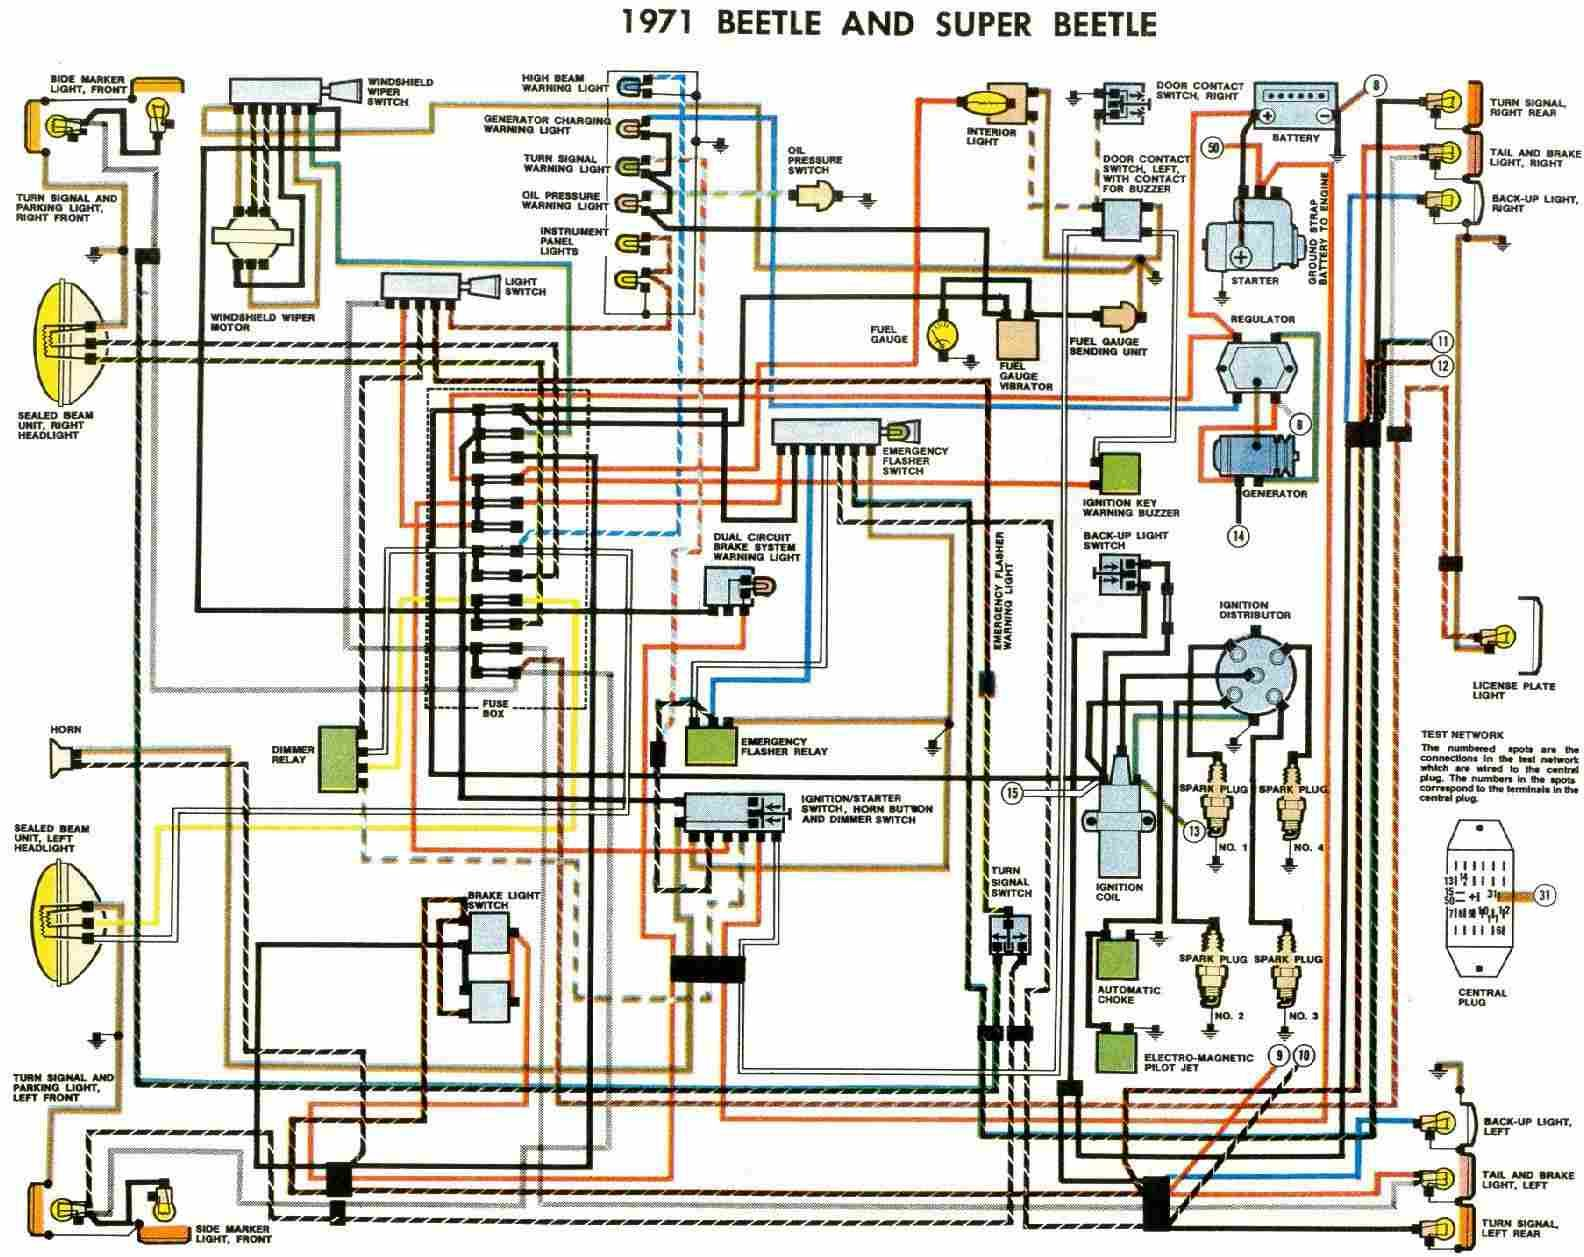 Vw Beetle Wiring Such A Simple Car Vw Super Beetle Vw Beetles Electrical Wiring Diagram